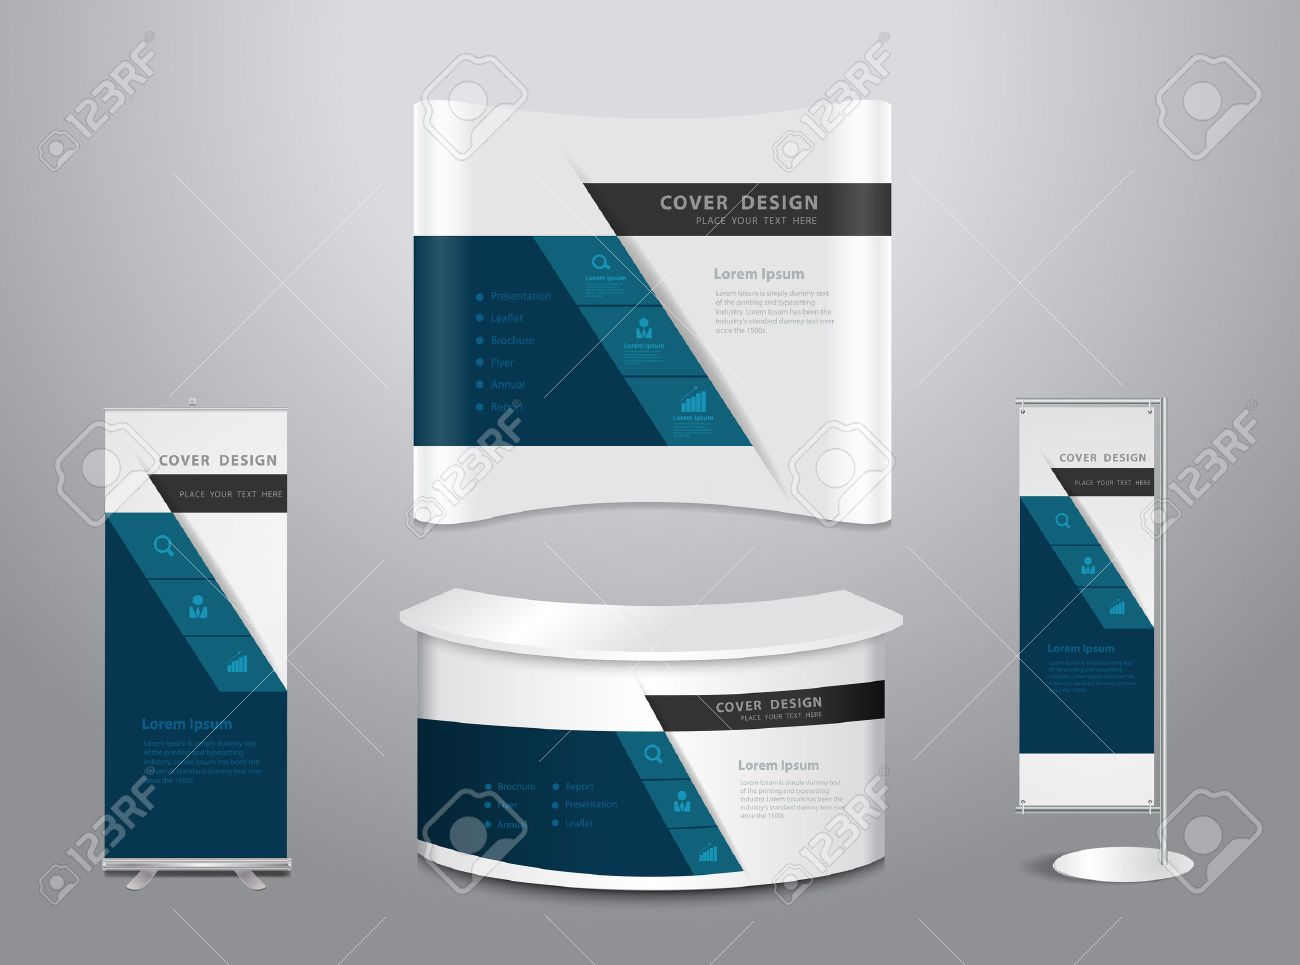 Exhibition Booth Mockup Free Download : Exhibition stands with cover presentation abstract geometric